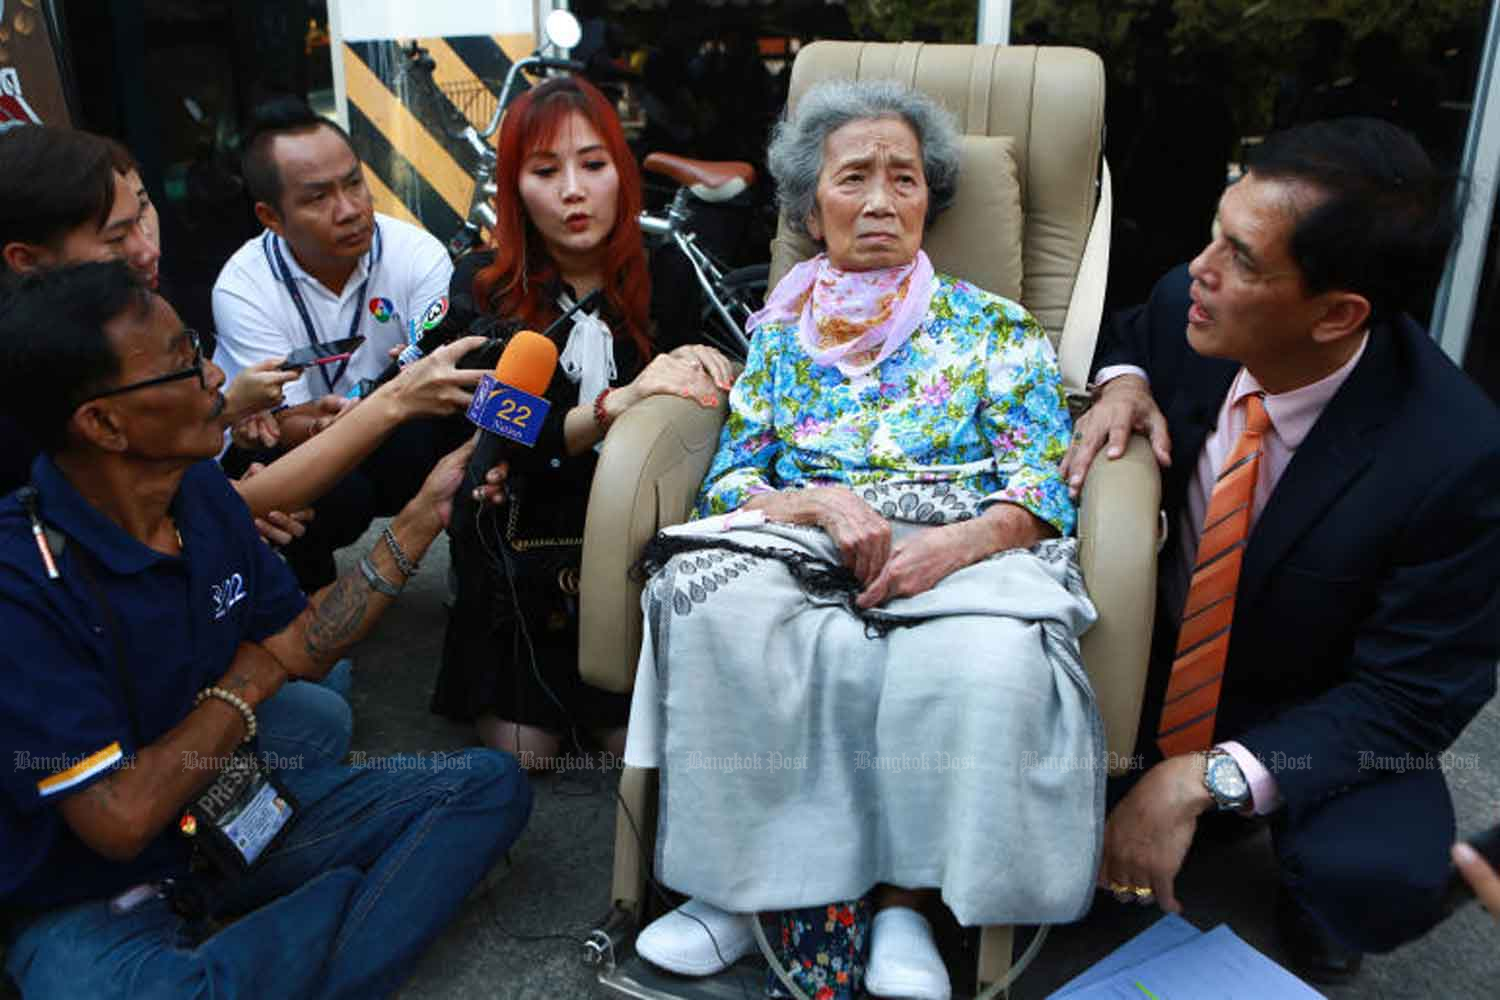 Huay Sriwirat, 76,  at the Phra Khanong Civil Court in Bangkok on Tuesday with her granddaughter Mintra Sriwirat, left, and lawyer Anantachai Chaiyadet, right. (Photo by Somchai Poomlard)